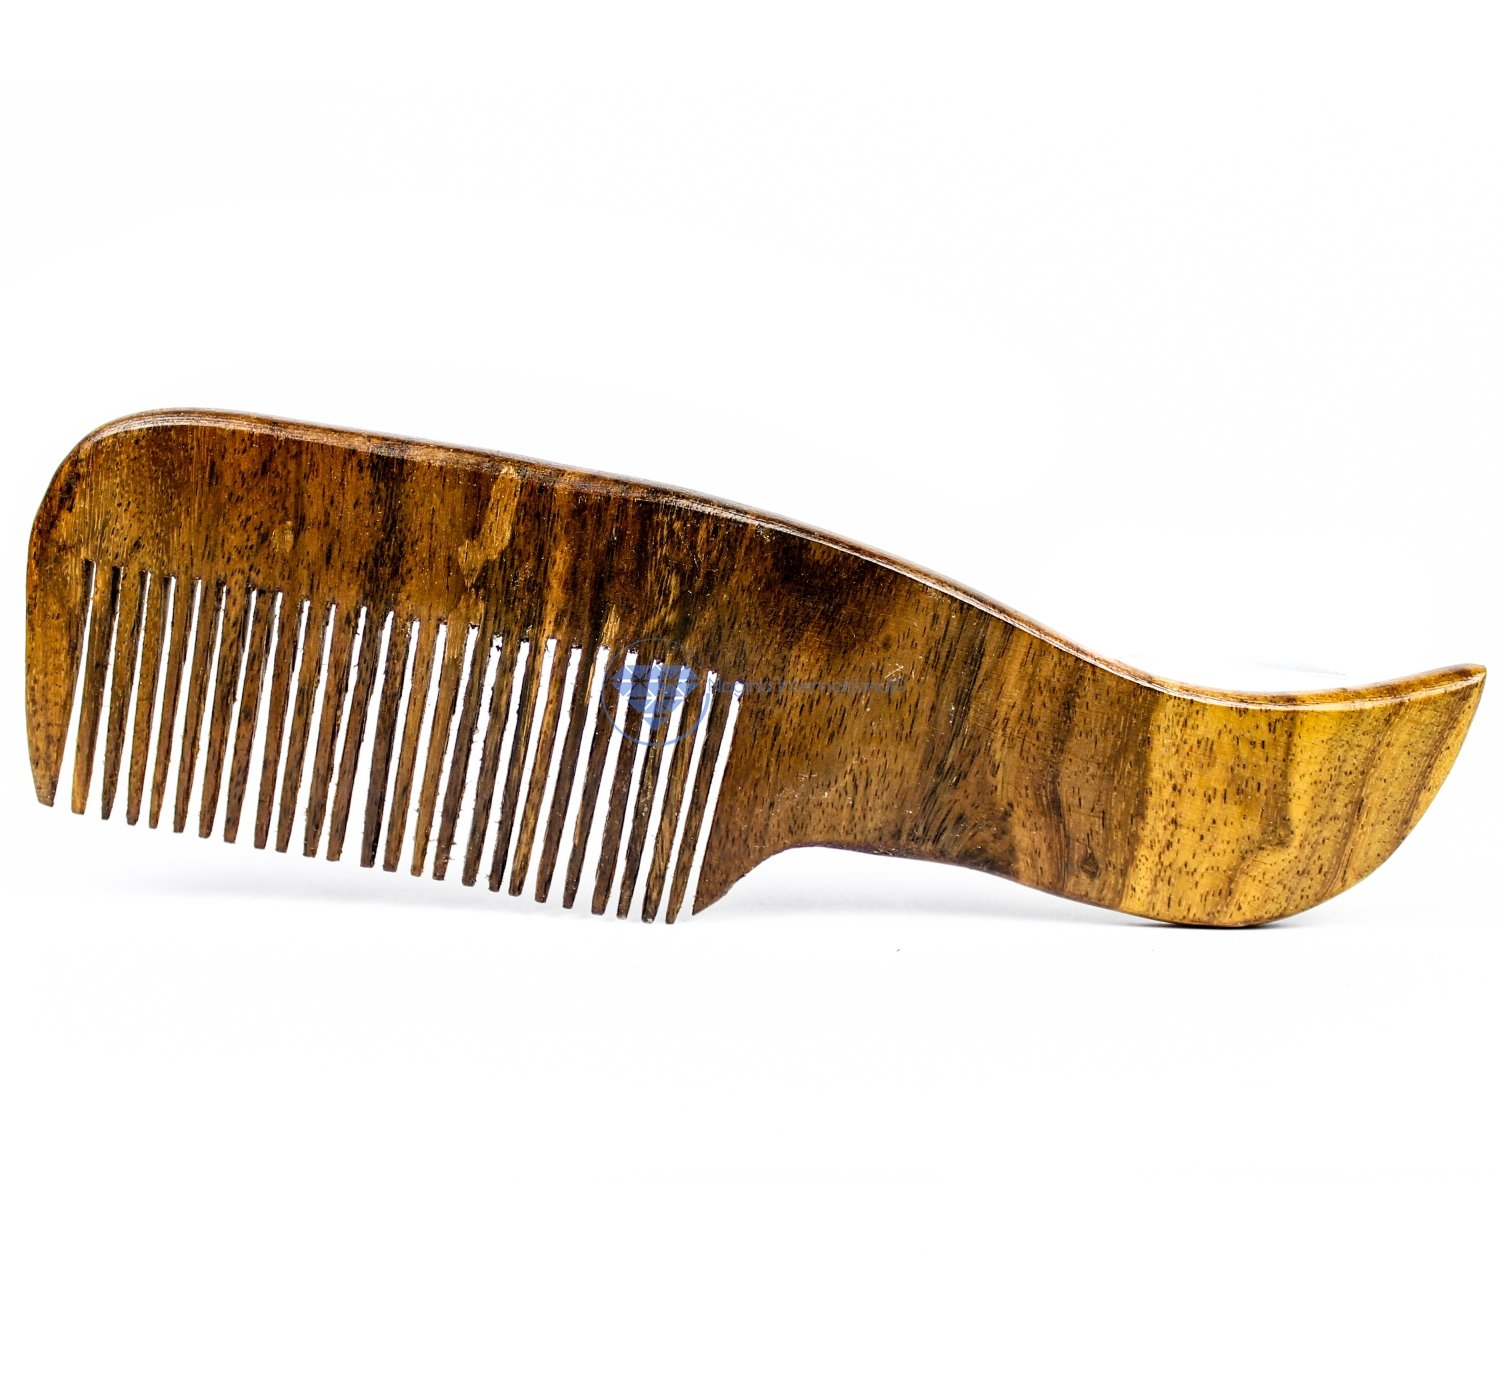 Nagina International Finely Crafted Handmade Premium Rosewood Combs & Hair Brush | Hair Mustache Tail Beard Brush (Medium Normal)